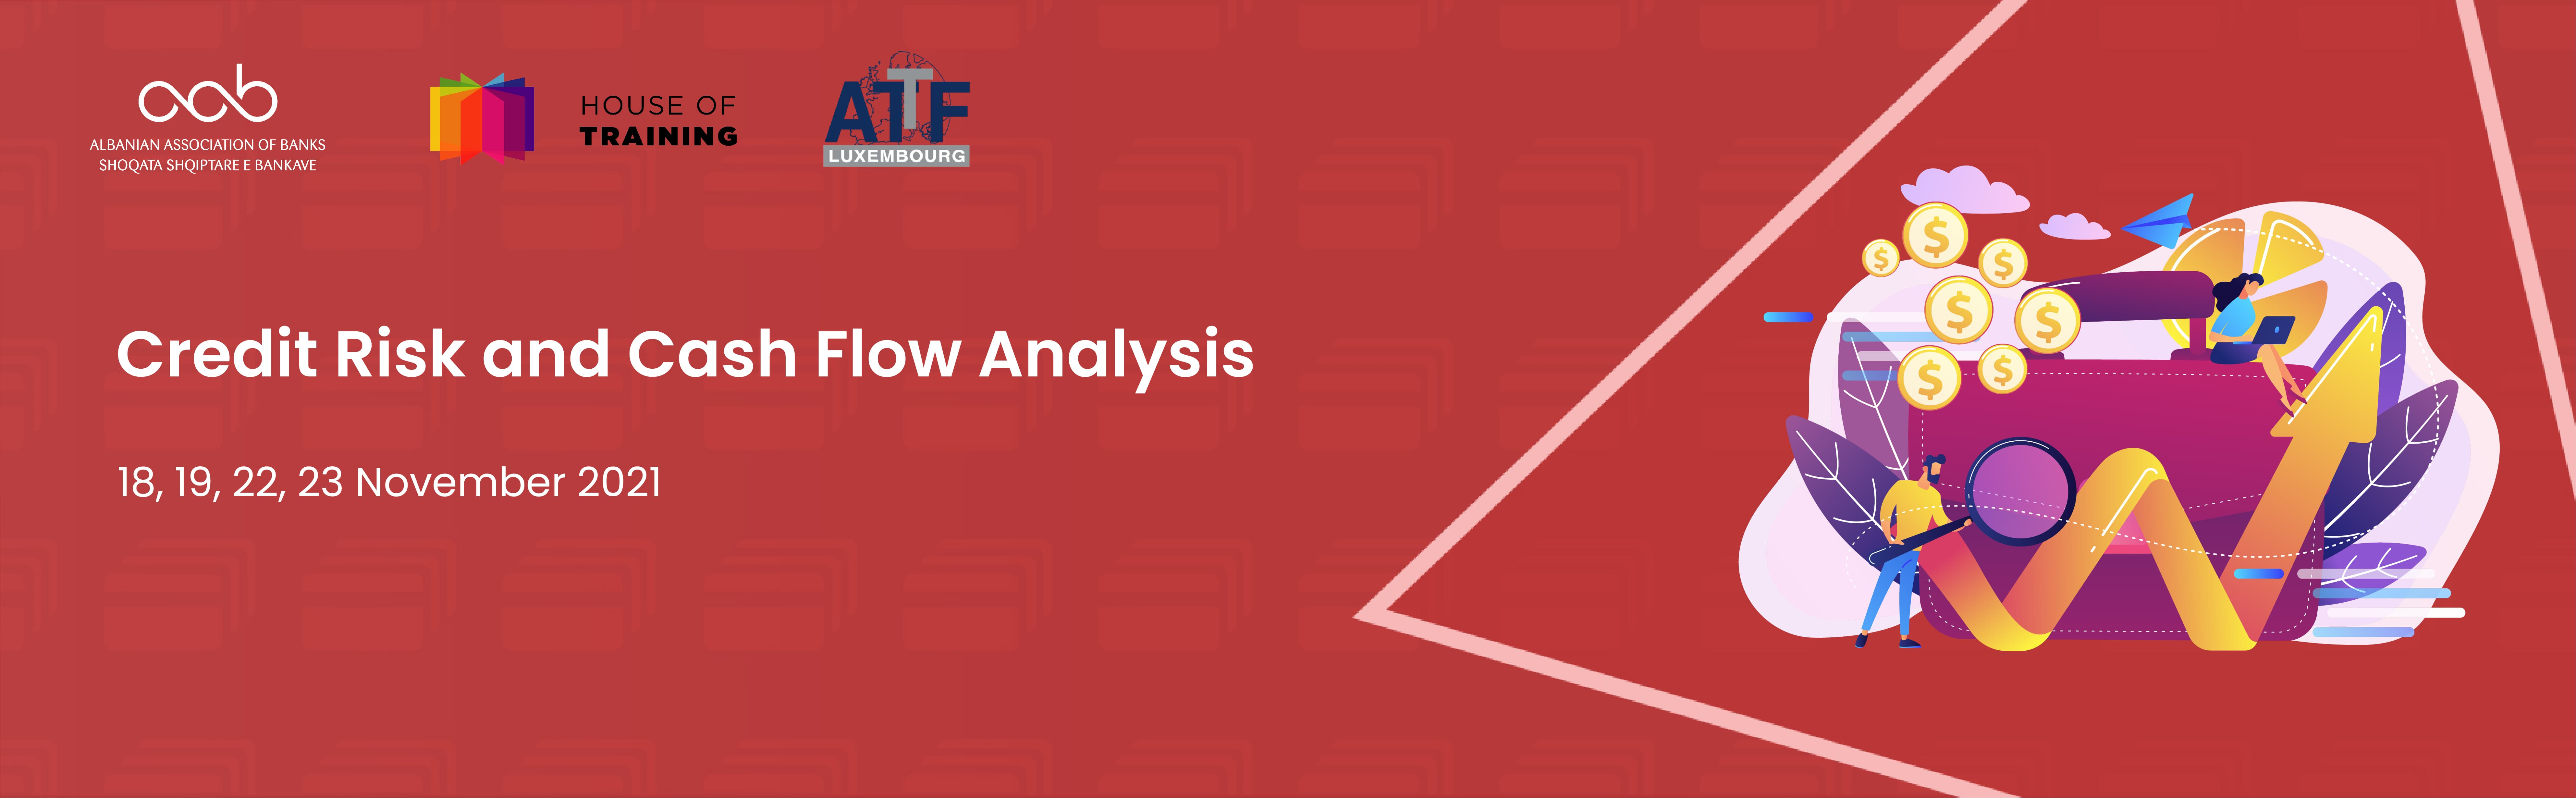 Credit Risk and Cash Flow Analysis